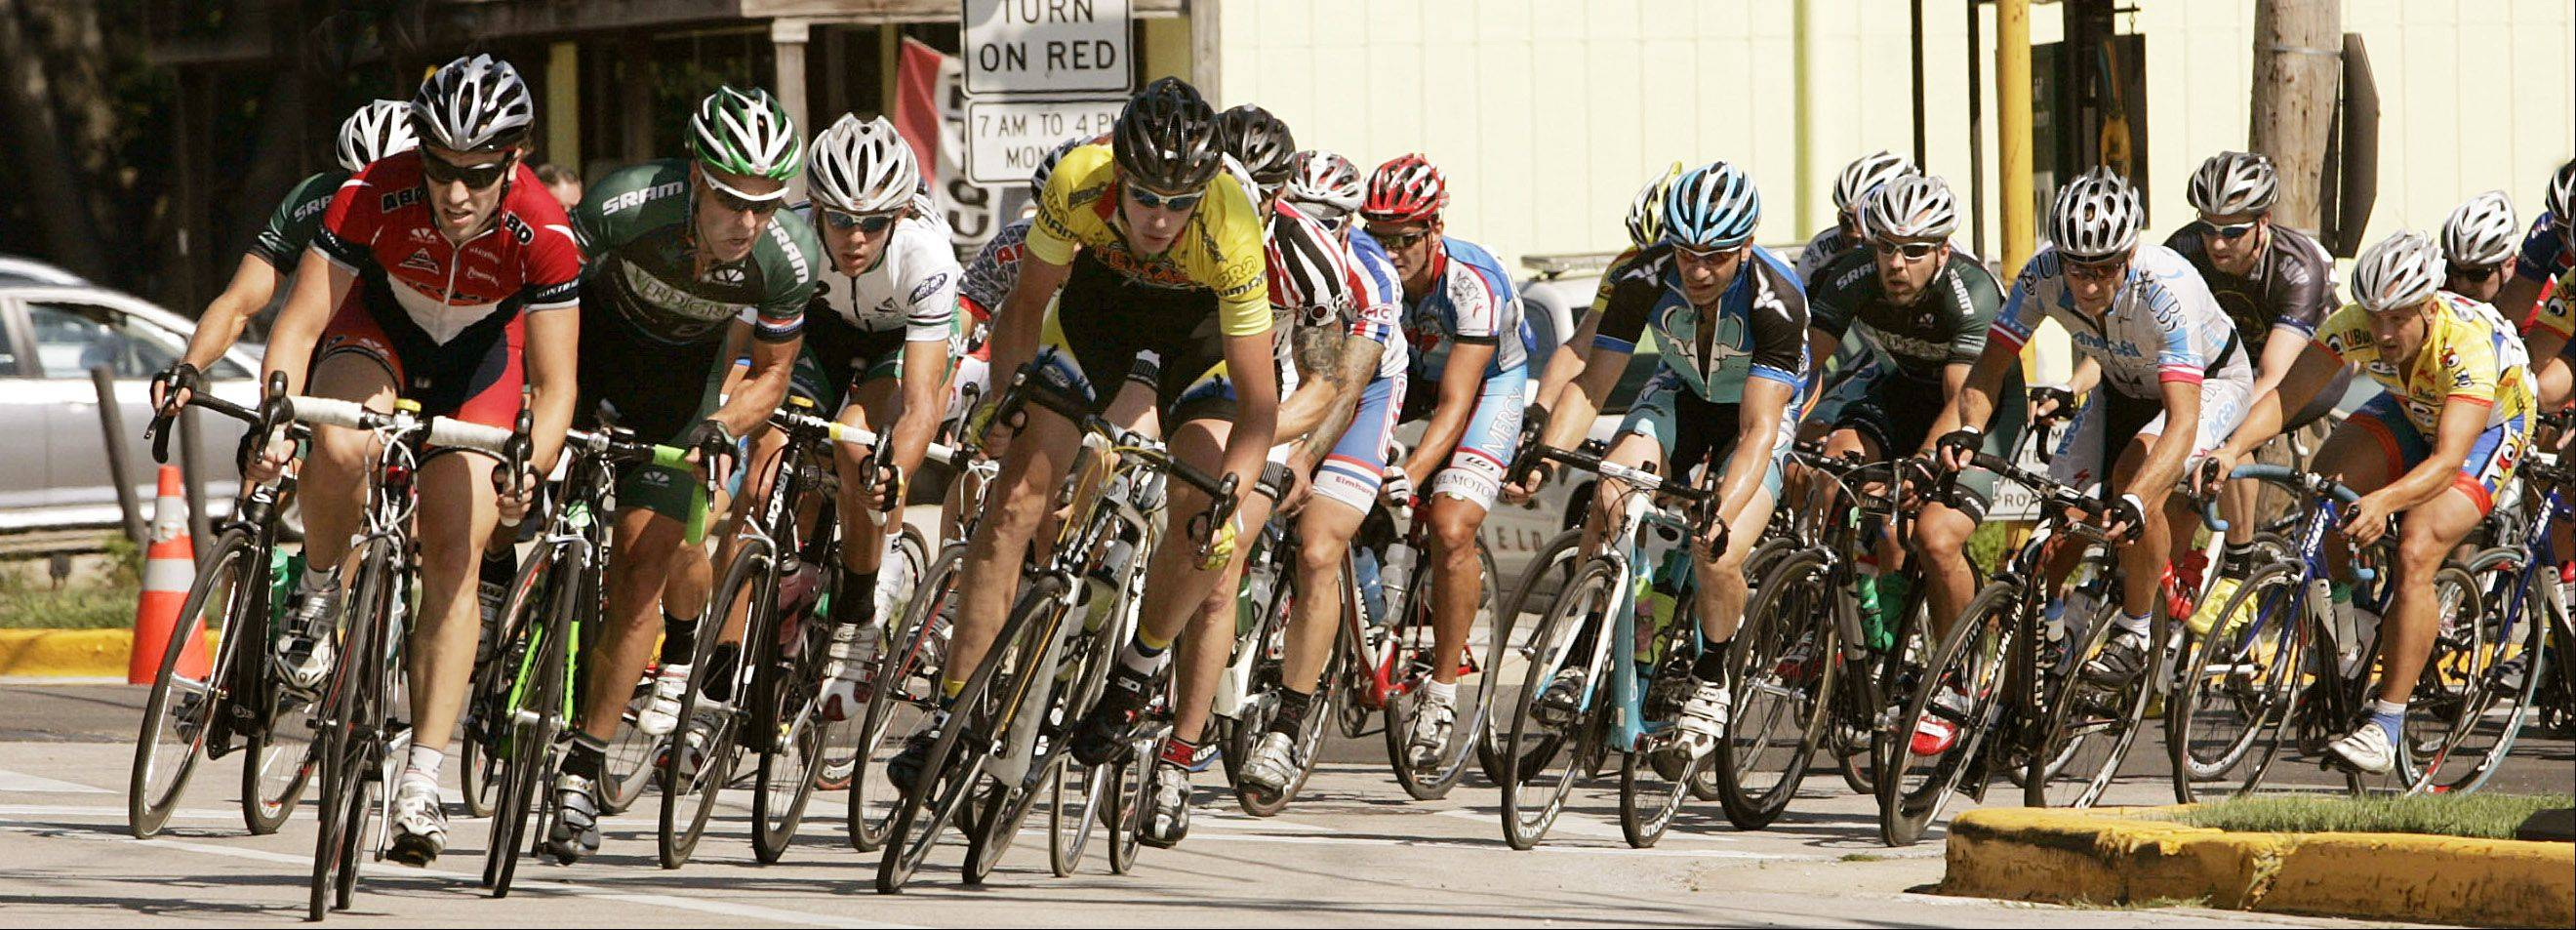 Winfield gearing up for criterium weekend